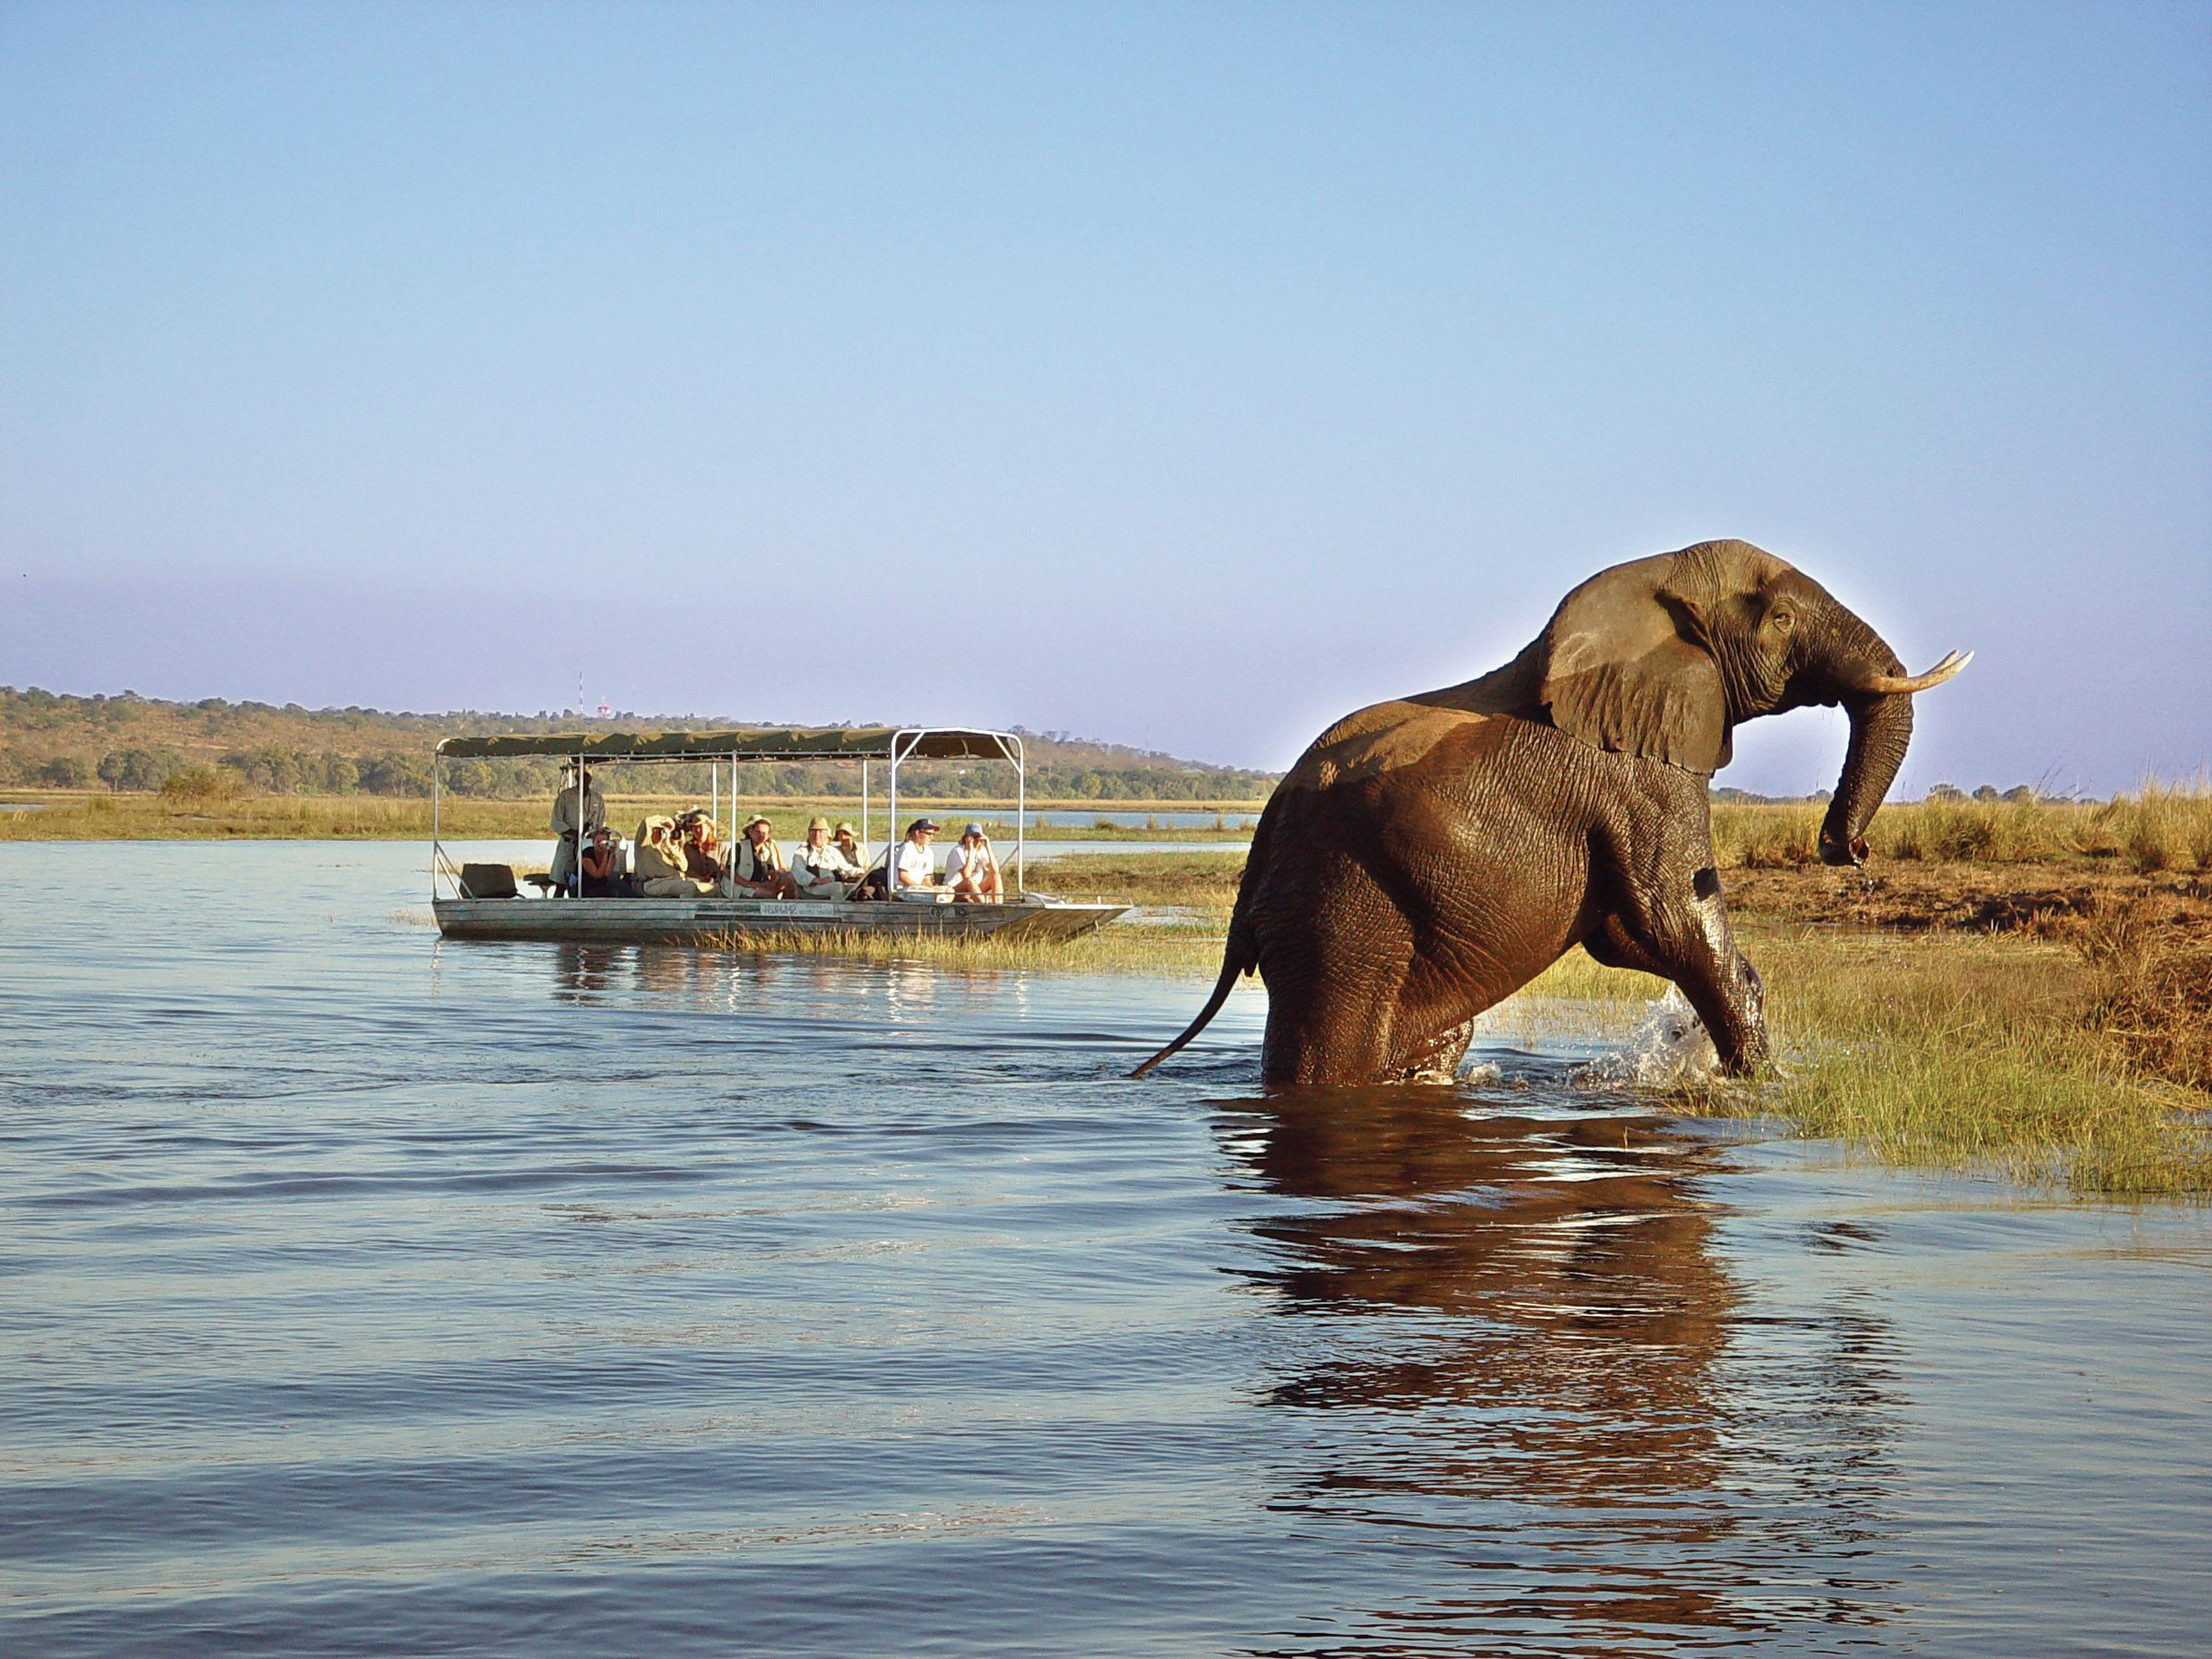 elephant emerging from the water with boat in the background